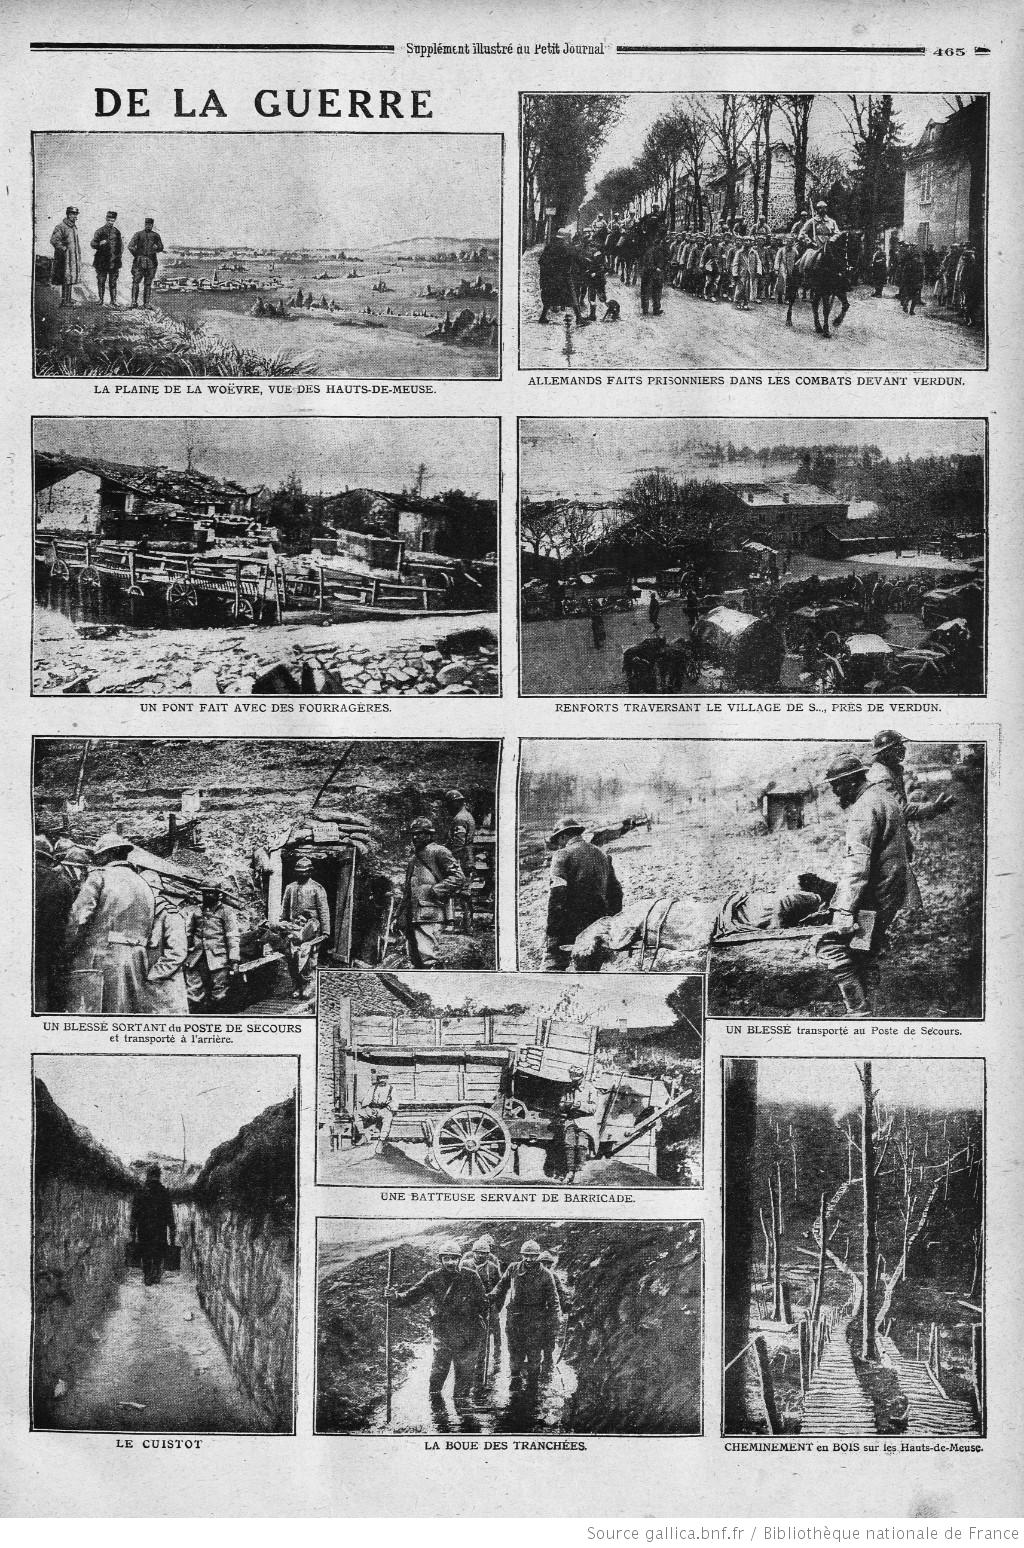 LPJ Illustre 1916-04-09 D.jpg